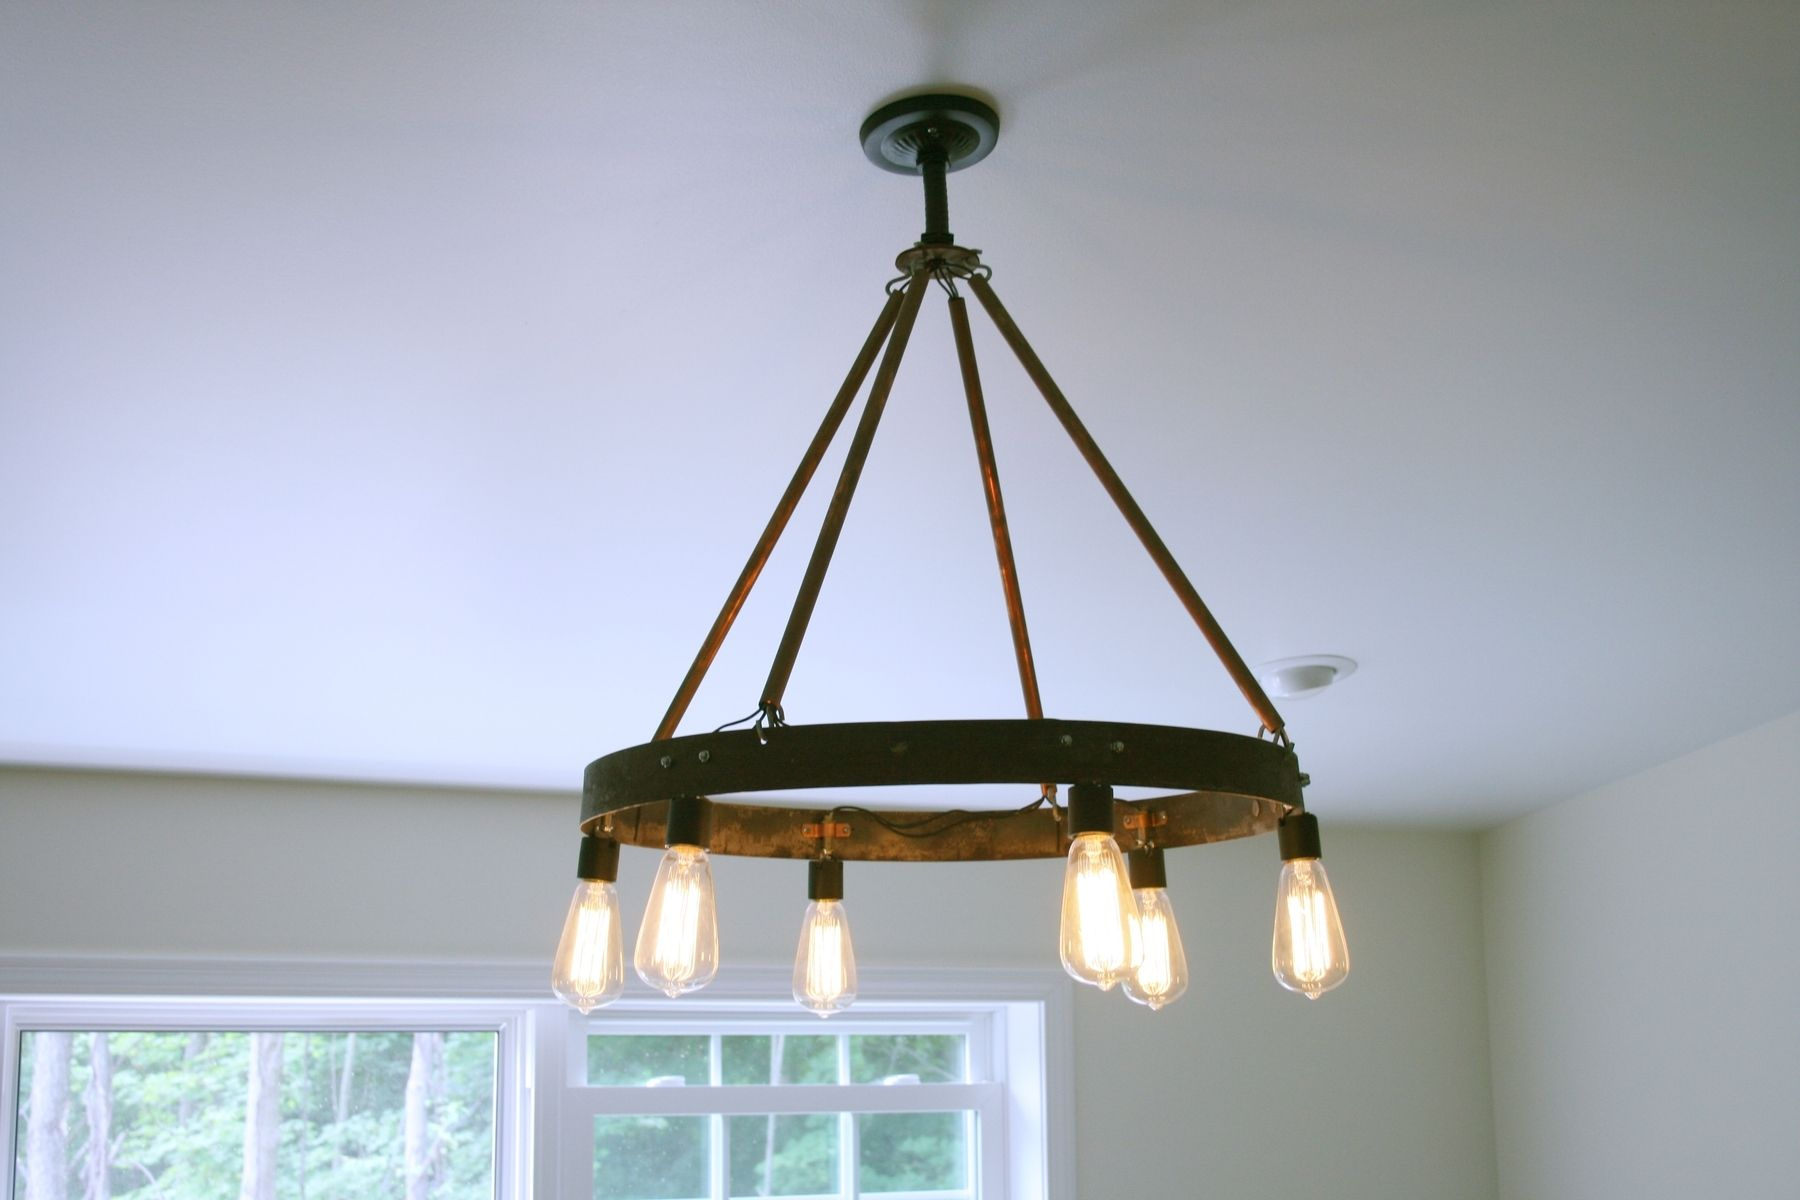 Buy a custom bourbon barrel ring chandelier featuring 6 edison bulb custom made bourbon barrel ring chandelier featuring 6 edison bulb mozeypictures Image collections